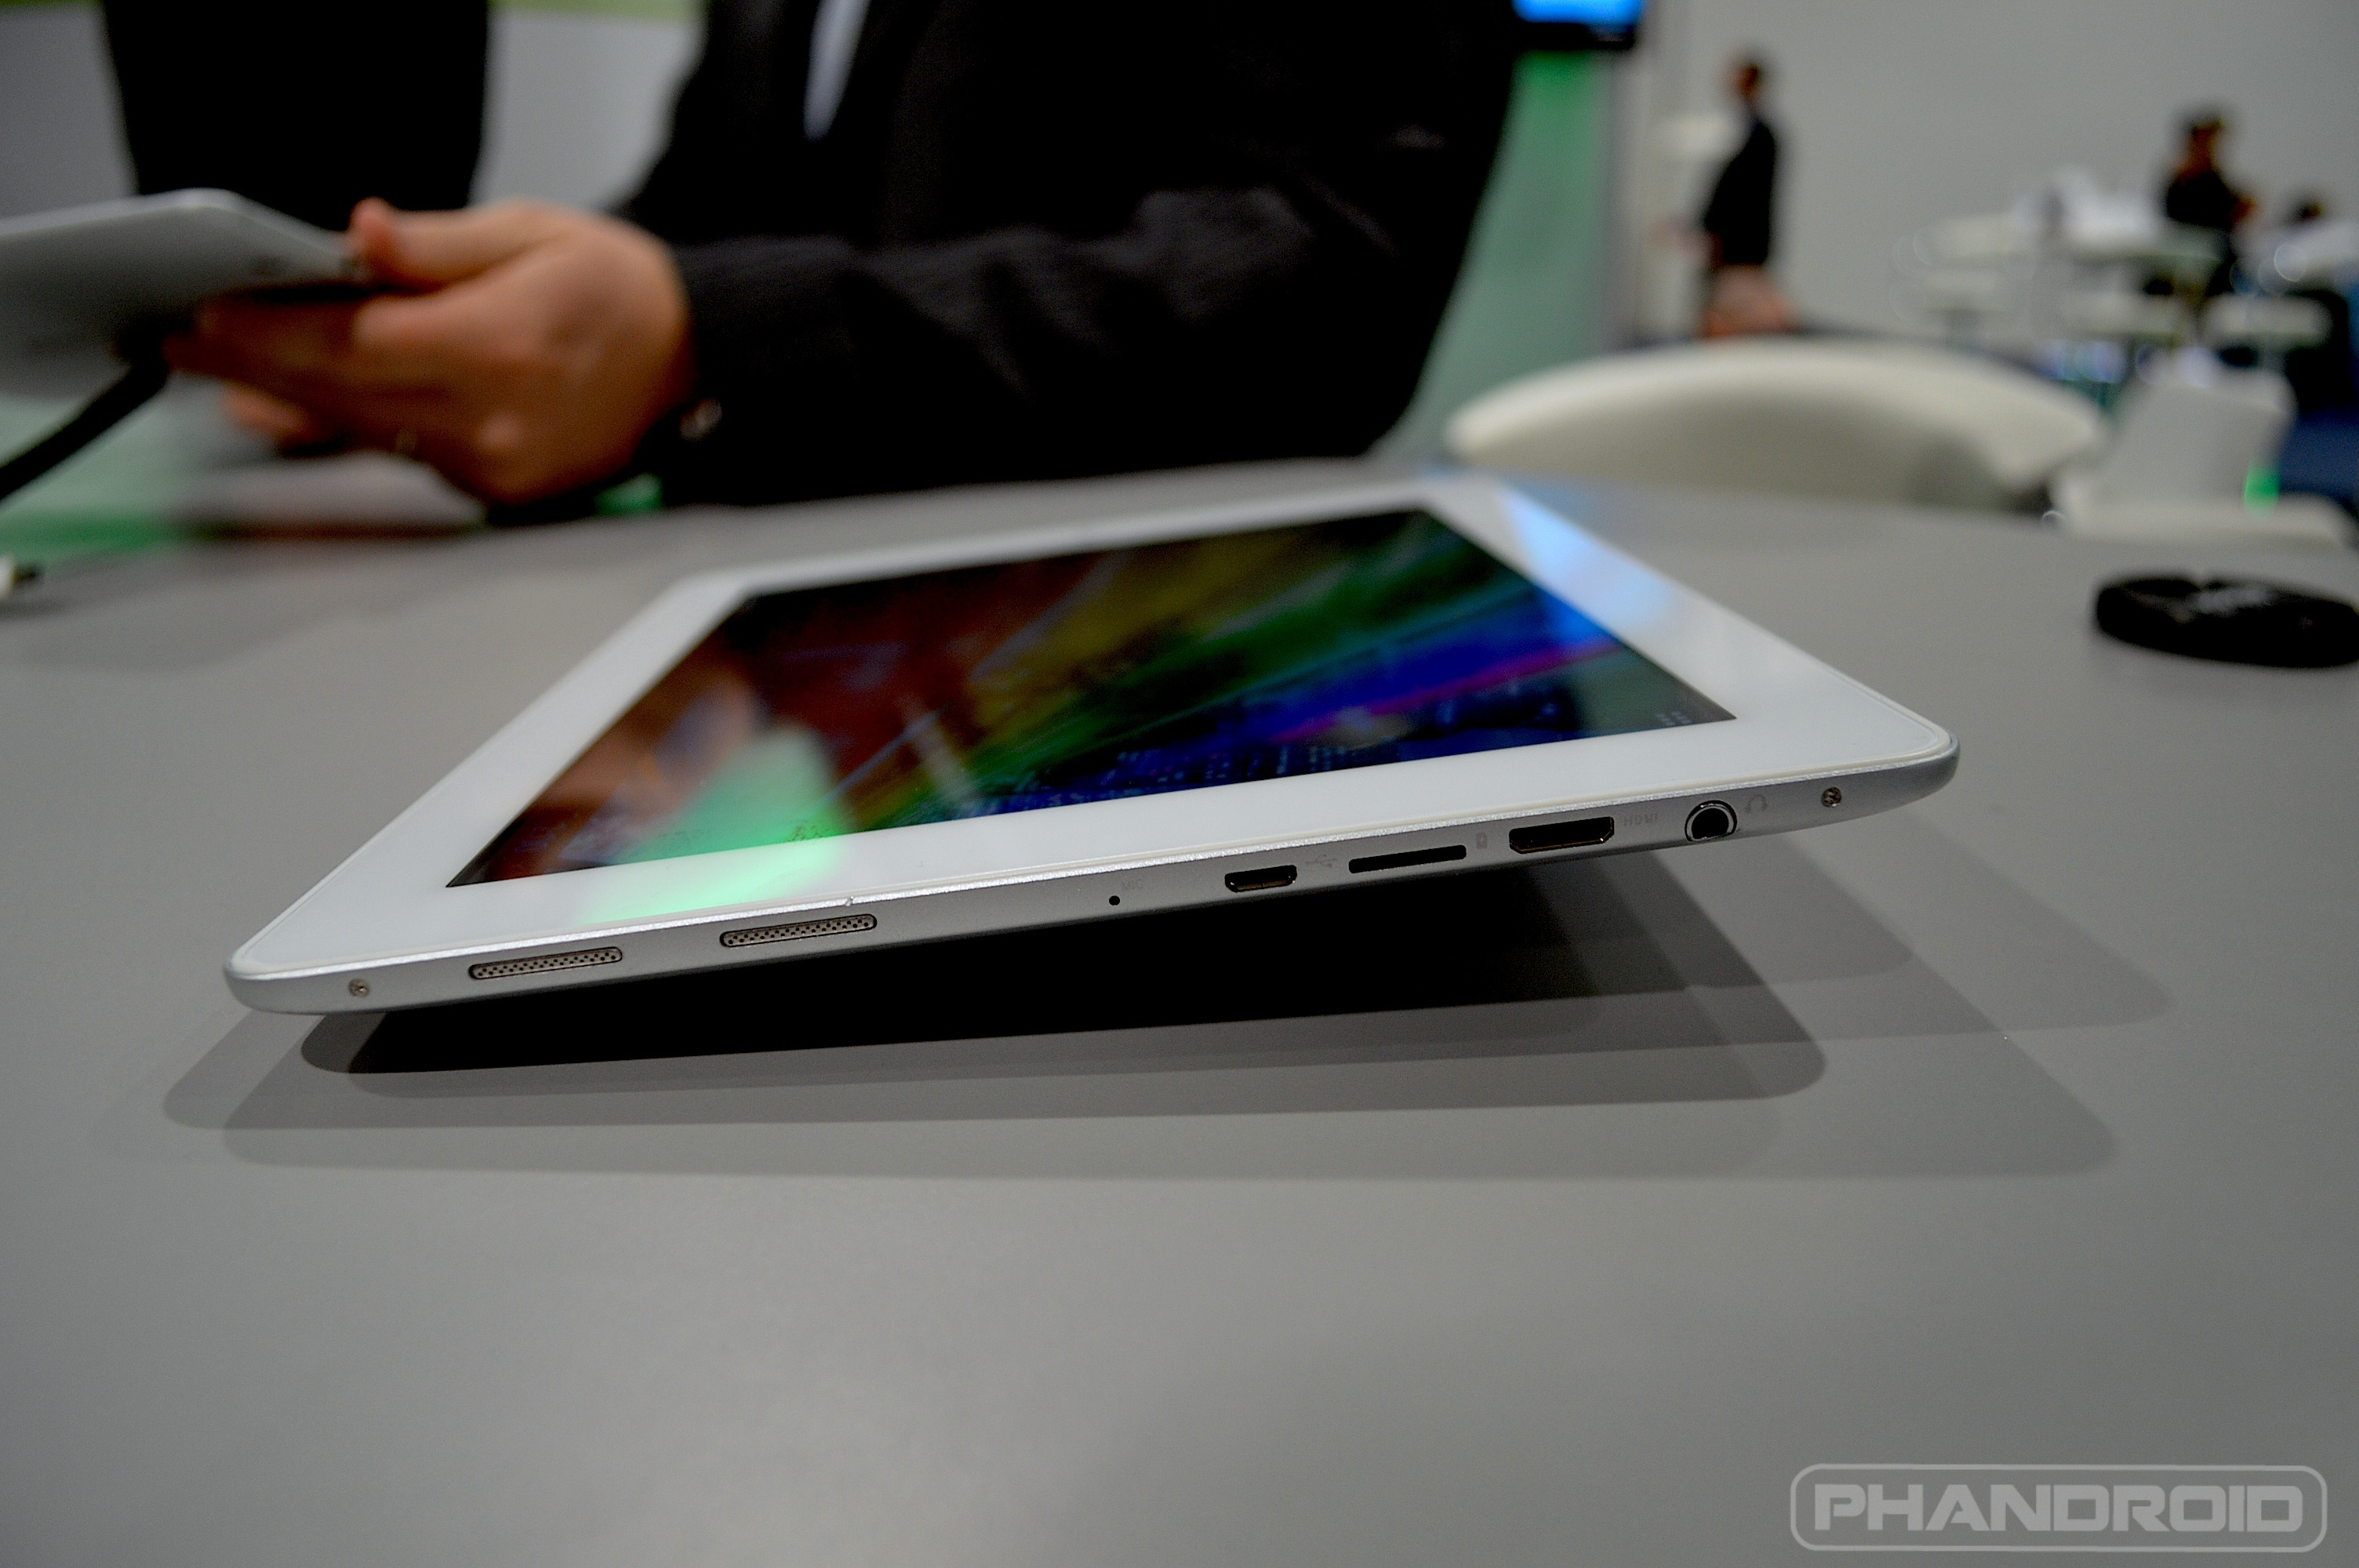 Android tab Hands-on: Sony Xperia ZL [VIDEO] Samsung teases